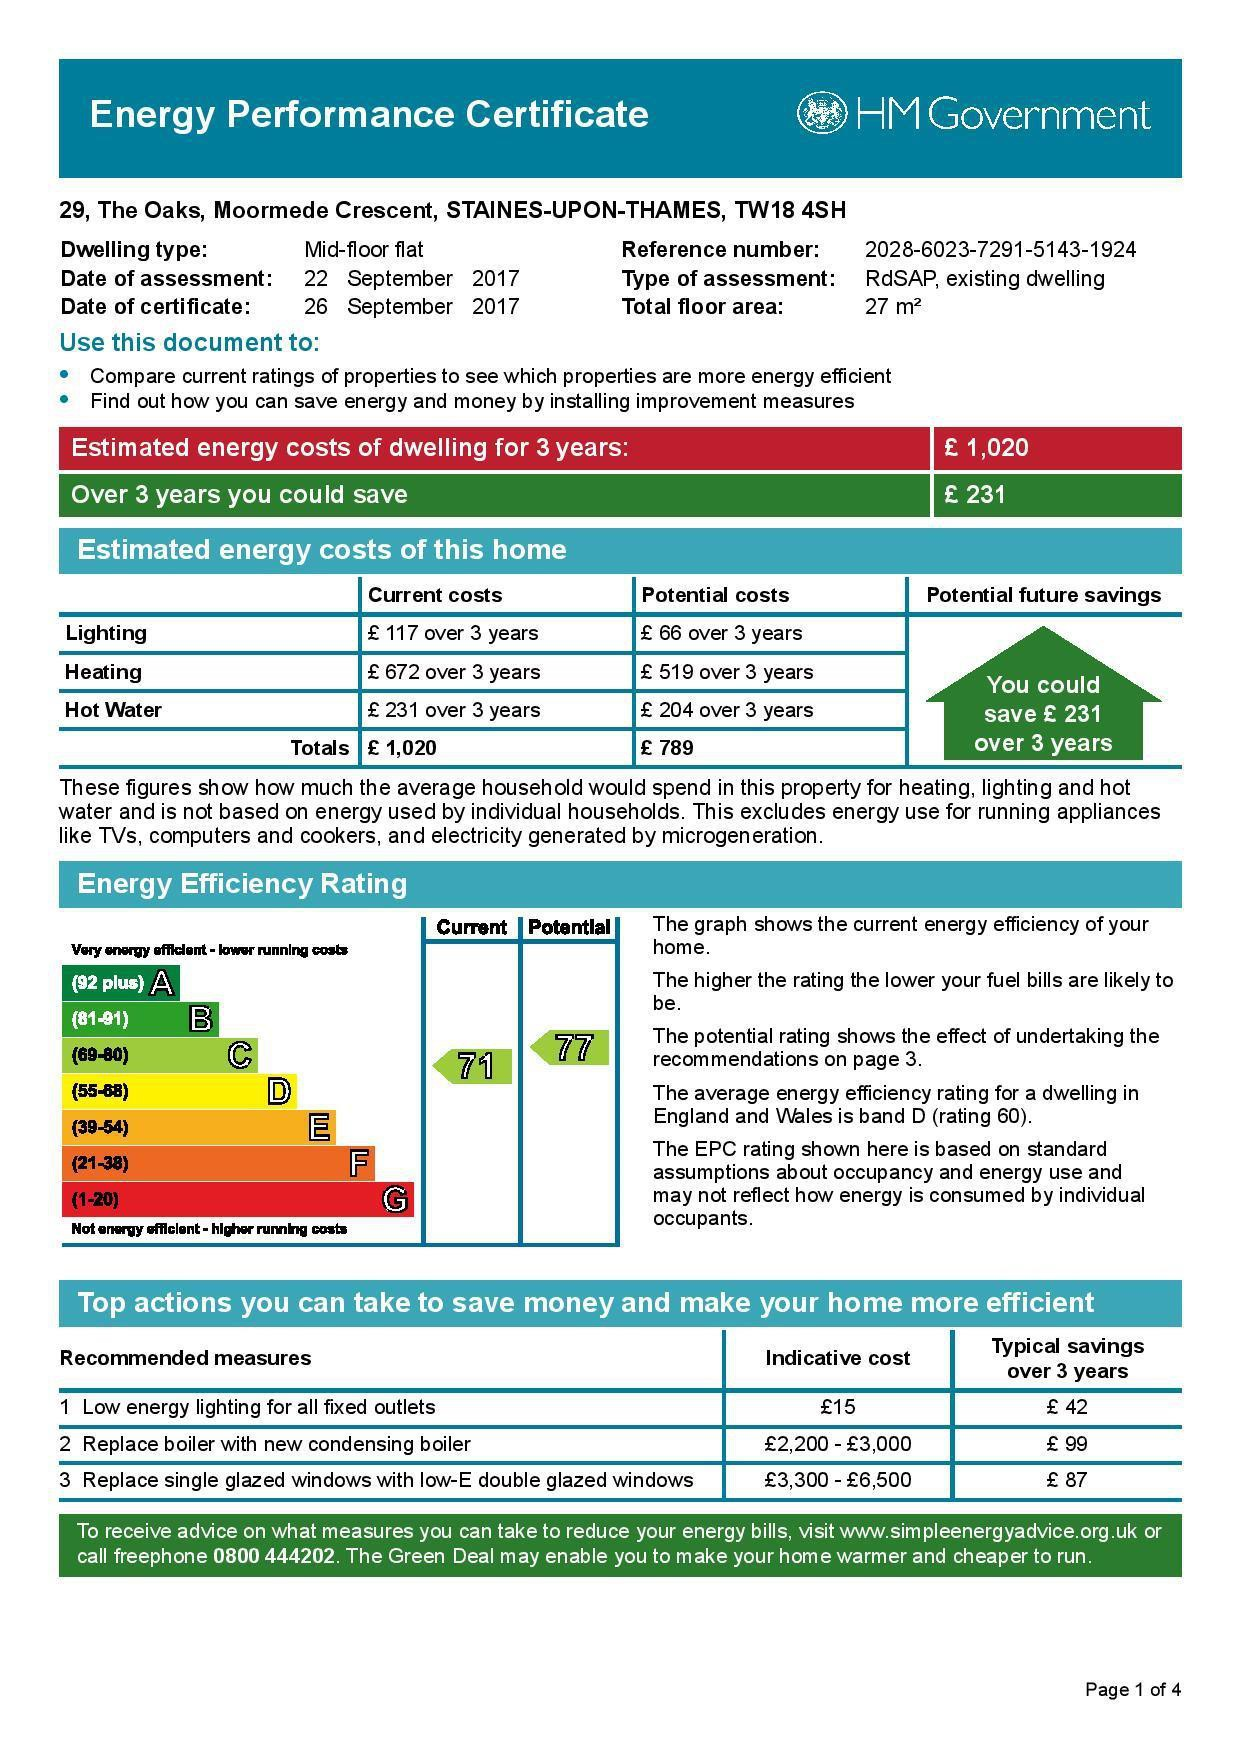 EPC Graph for 29 The Oaks, Moormede Crescent, Staines-Upon-Thames TW18 4SH